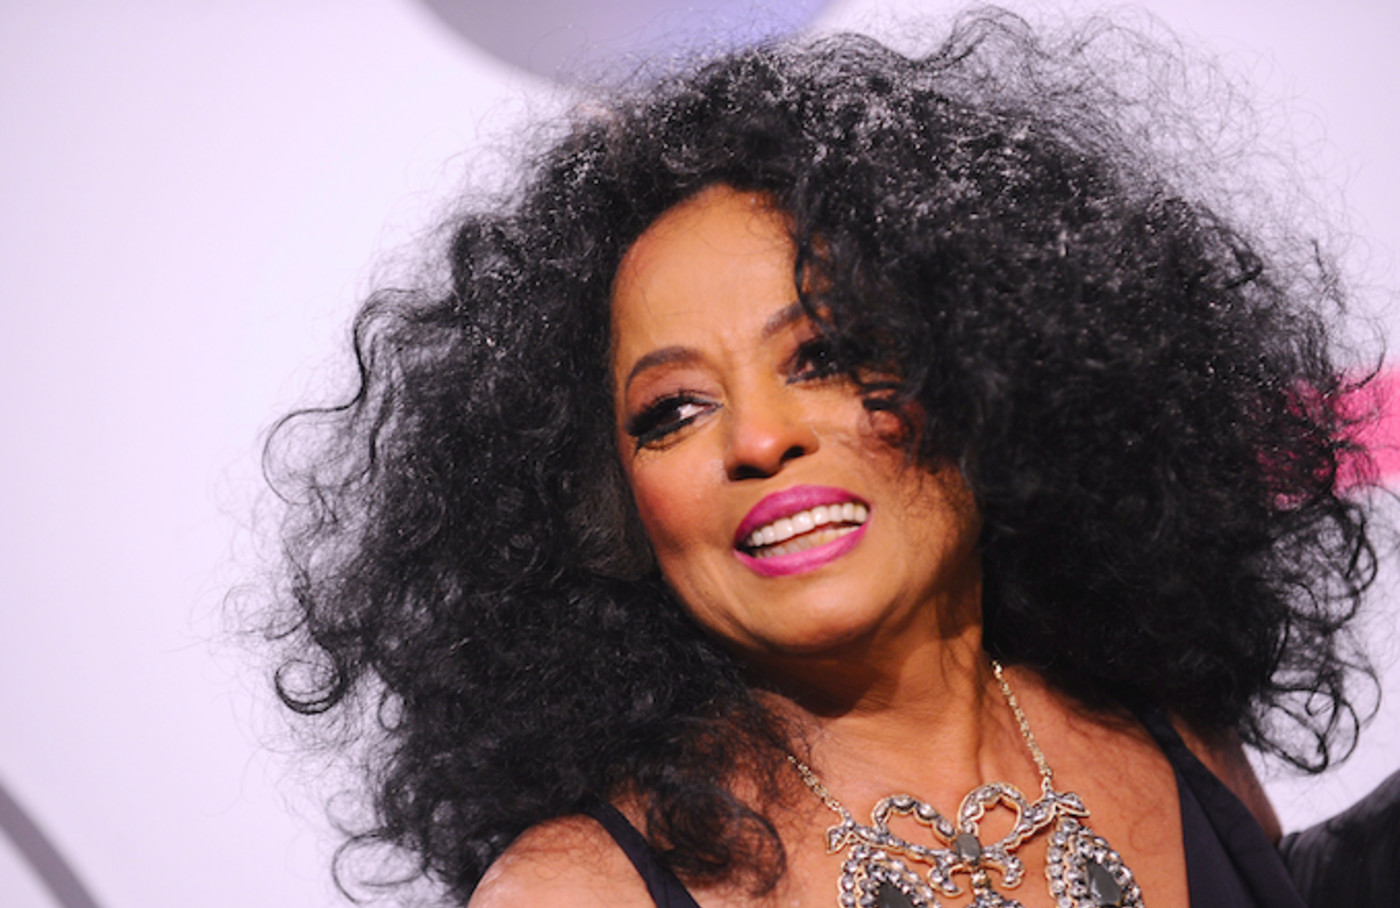 diana ross defends michael jackson in wake of leaving neverland complex diana ross defends michael jackson in